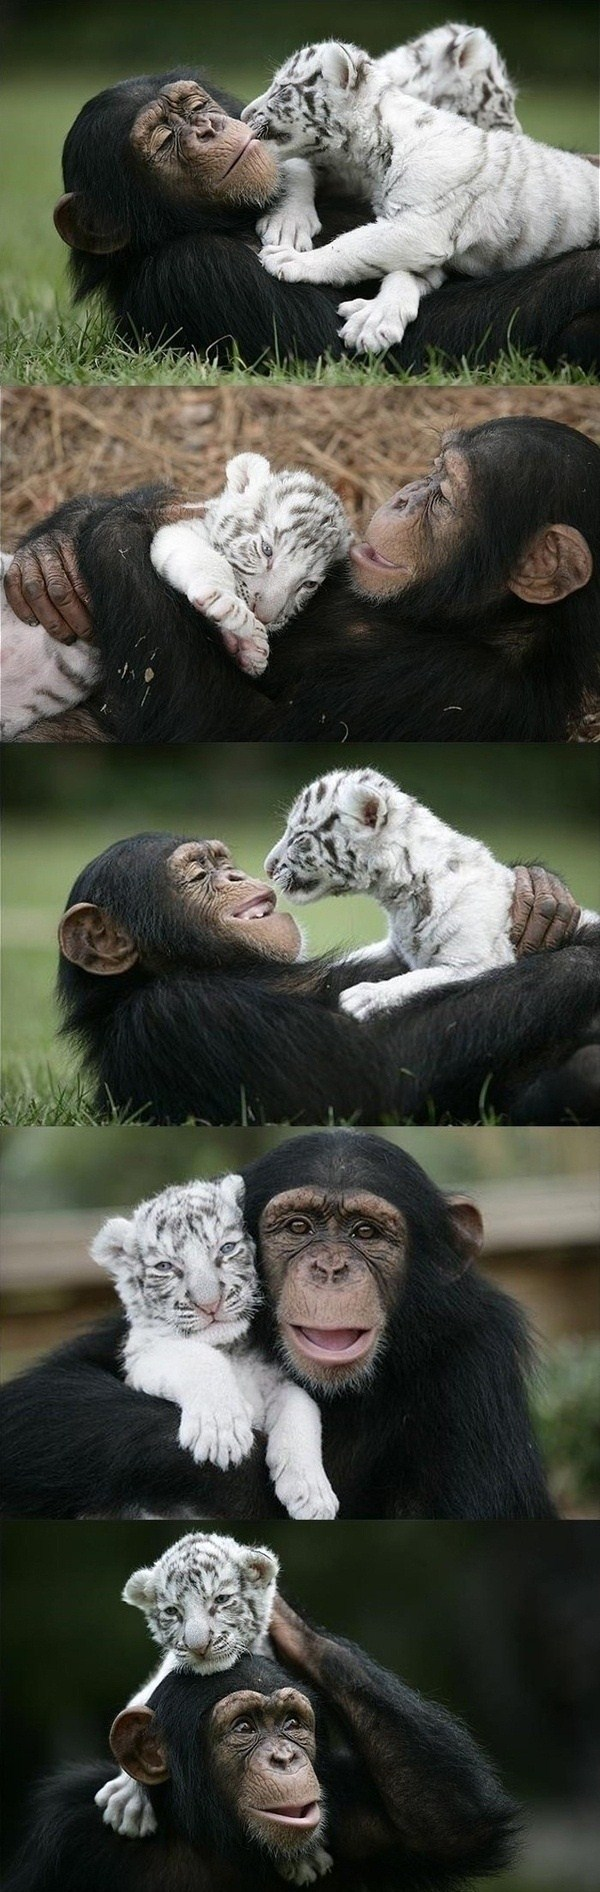 292 Unlikely Animal Friendships (30 photos)